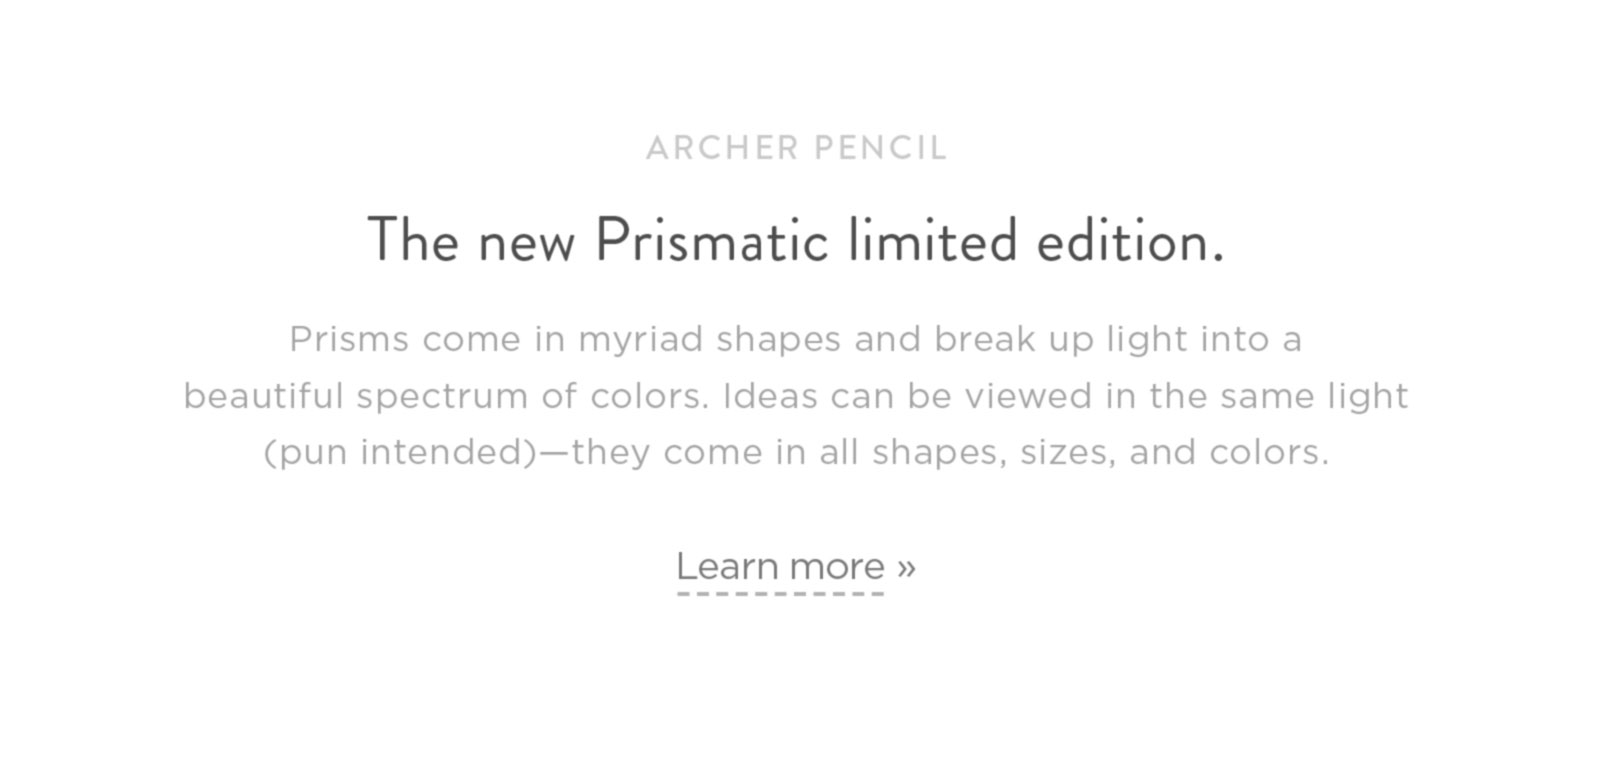 The new Prismatic limited edition. Learn more »